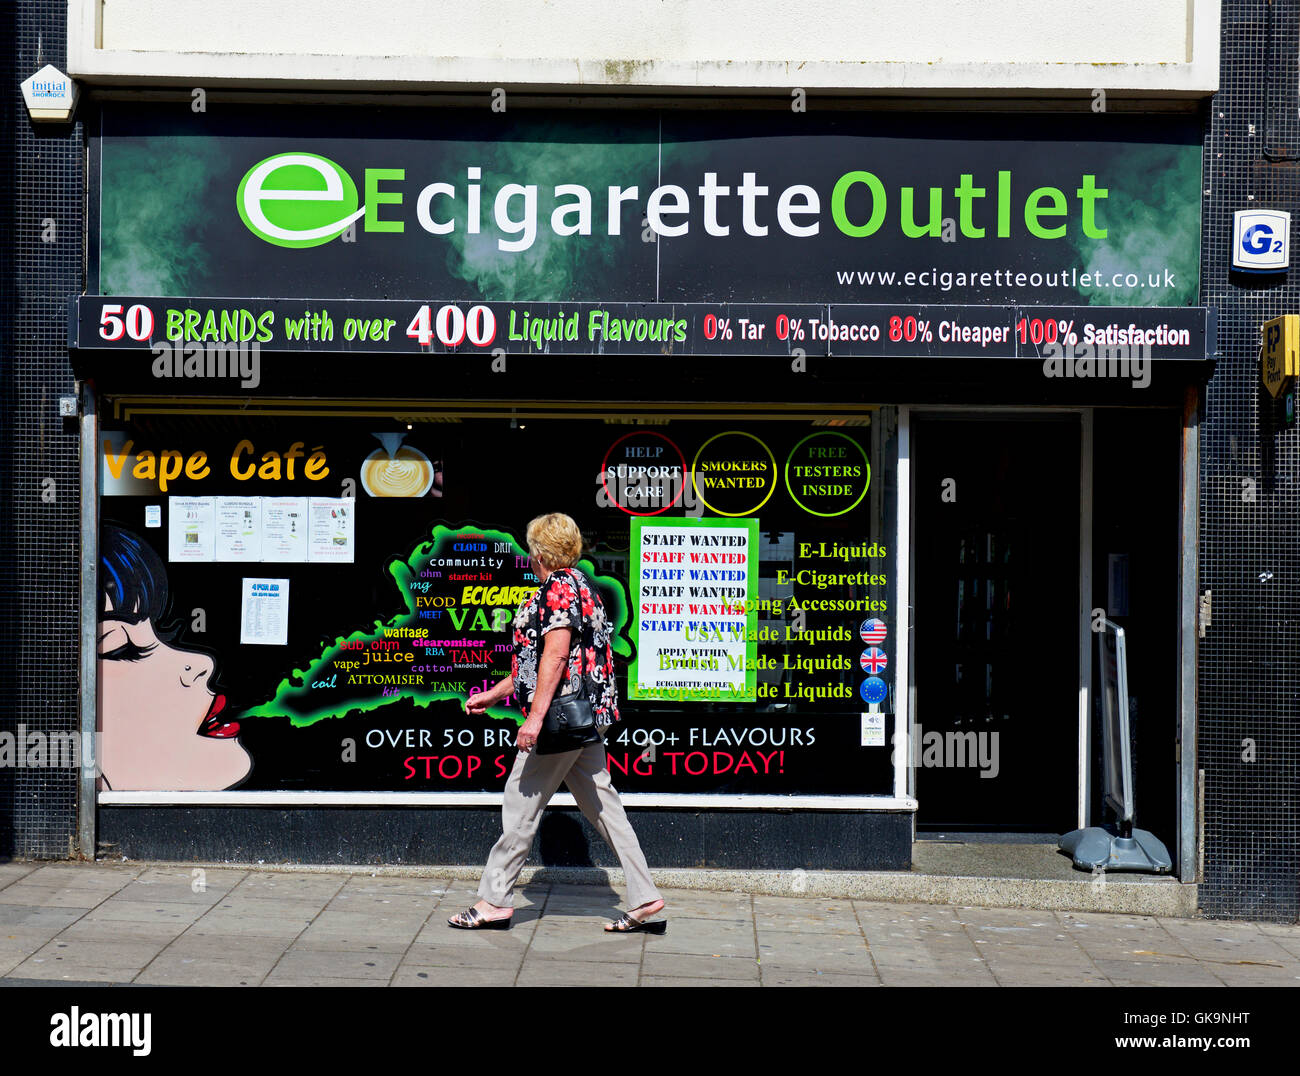 Woman walking past Ecigarette outlet shop, England UK - Stock Image